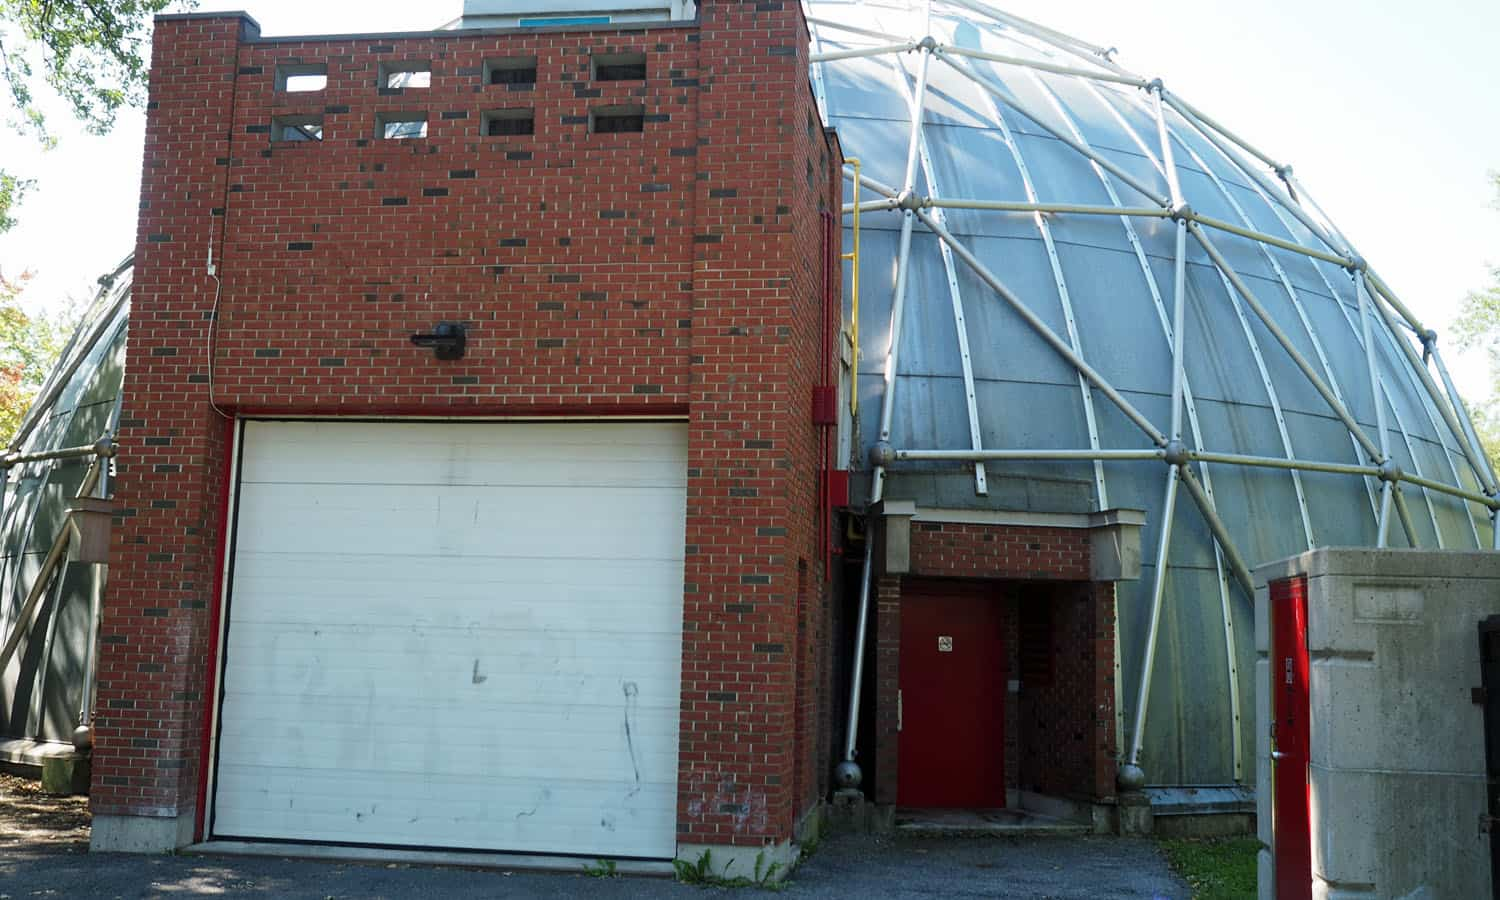 Zamboni storage at the northeast of the building finished in contrasting burnt red brick